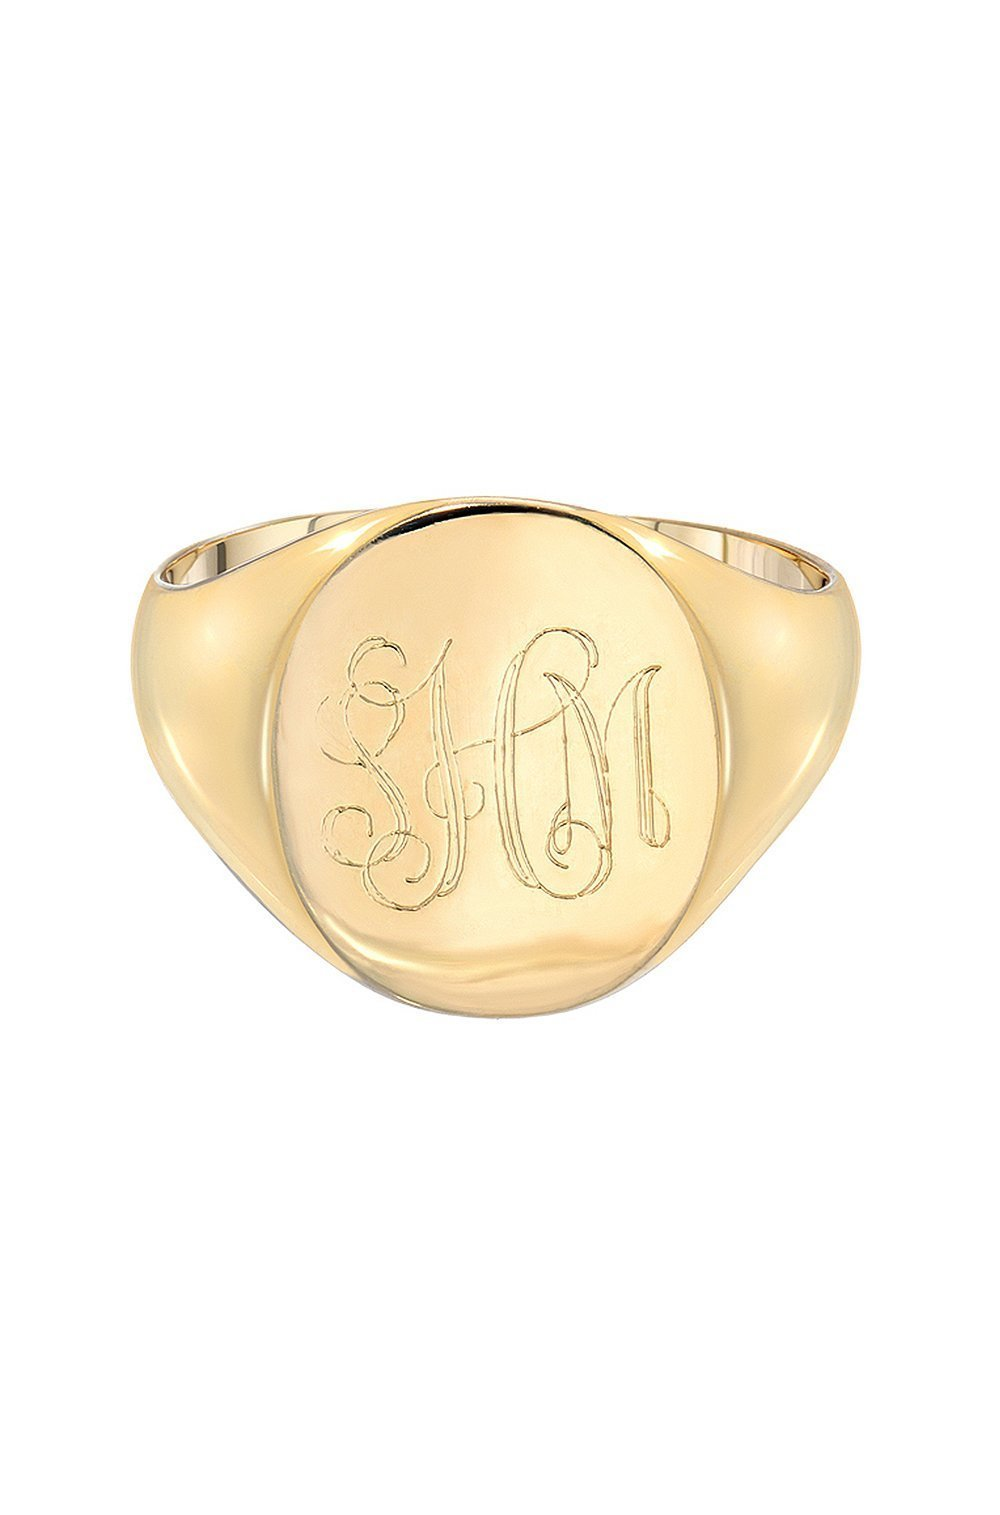 14k gold large signet ring, monogram signet ring